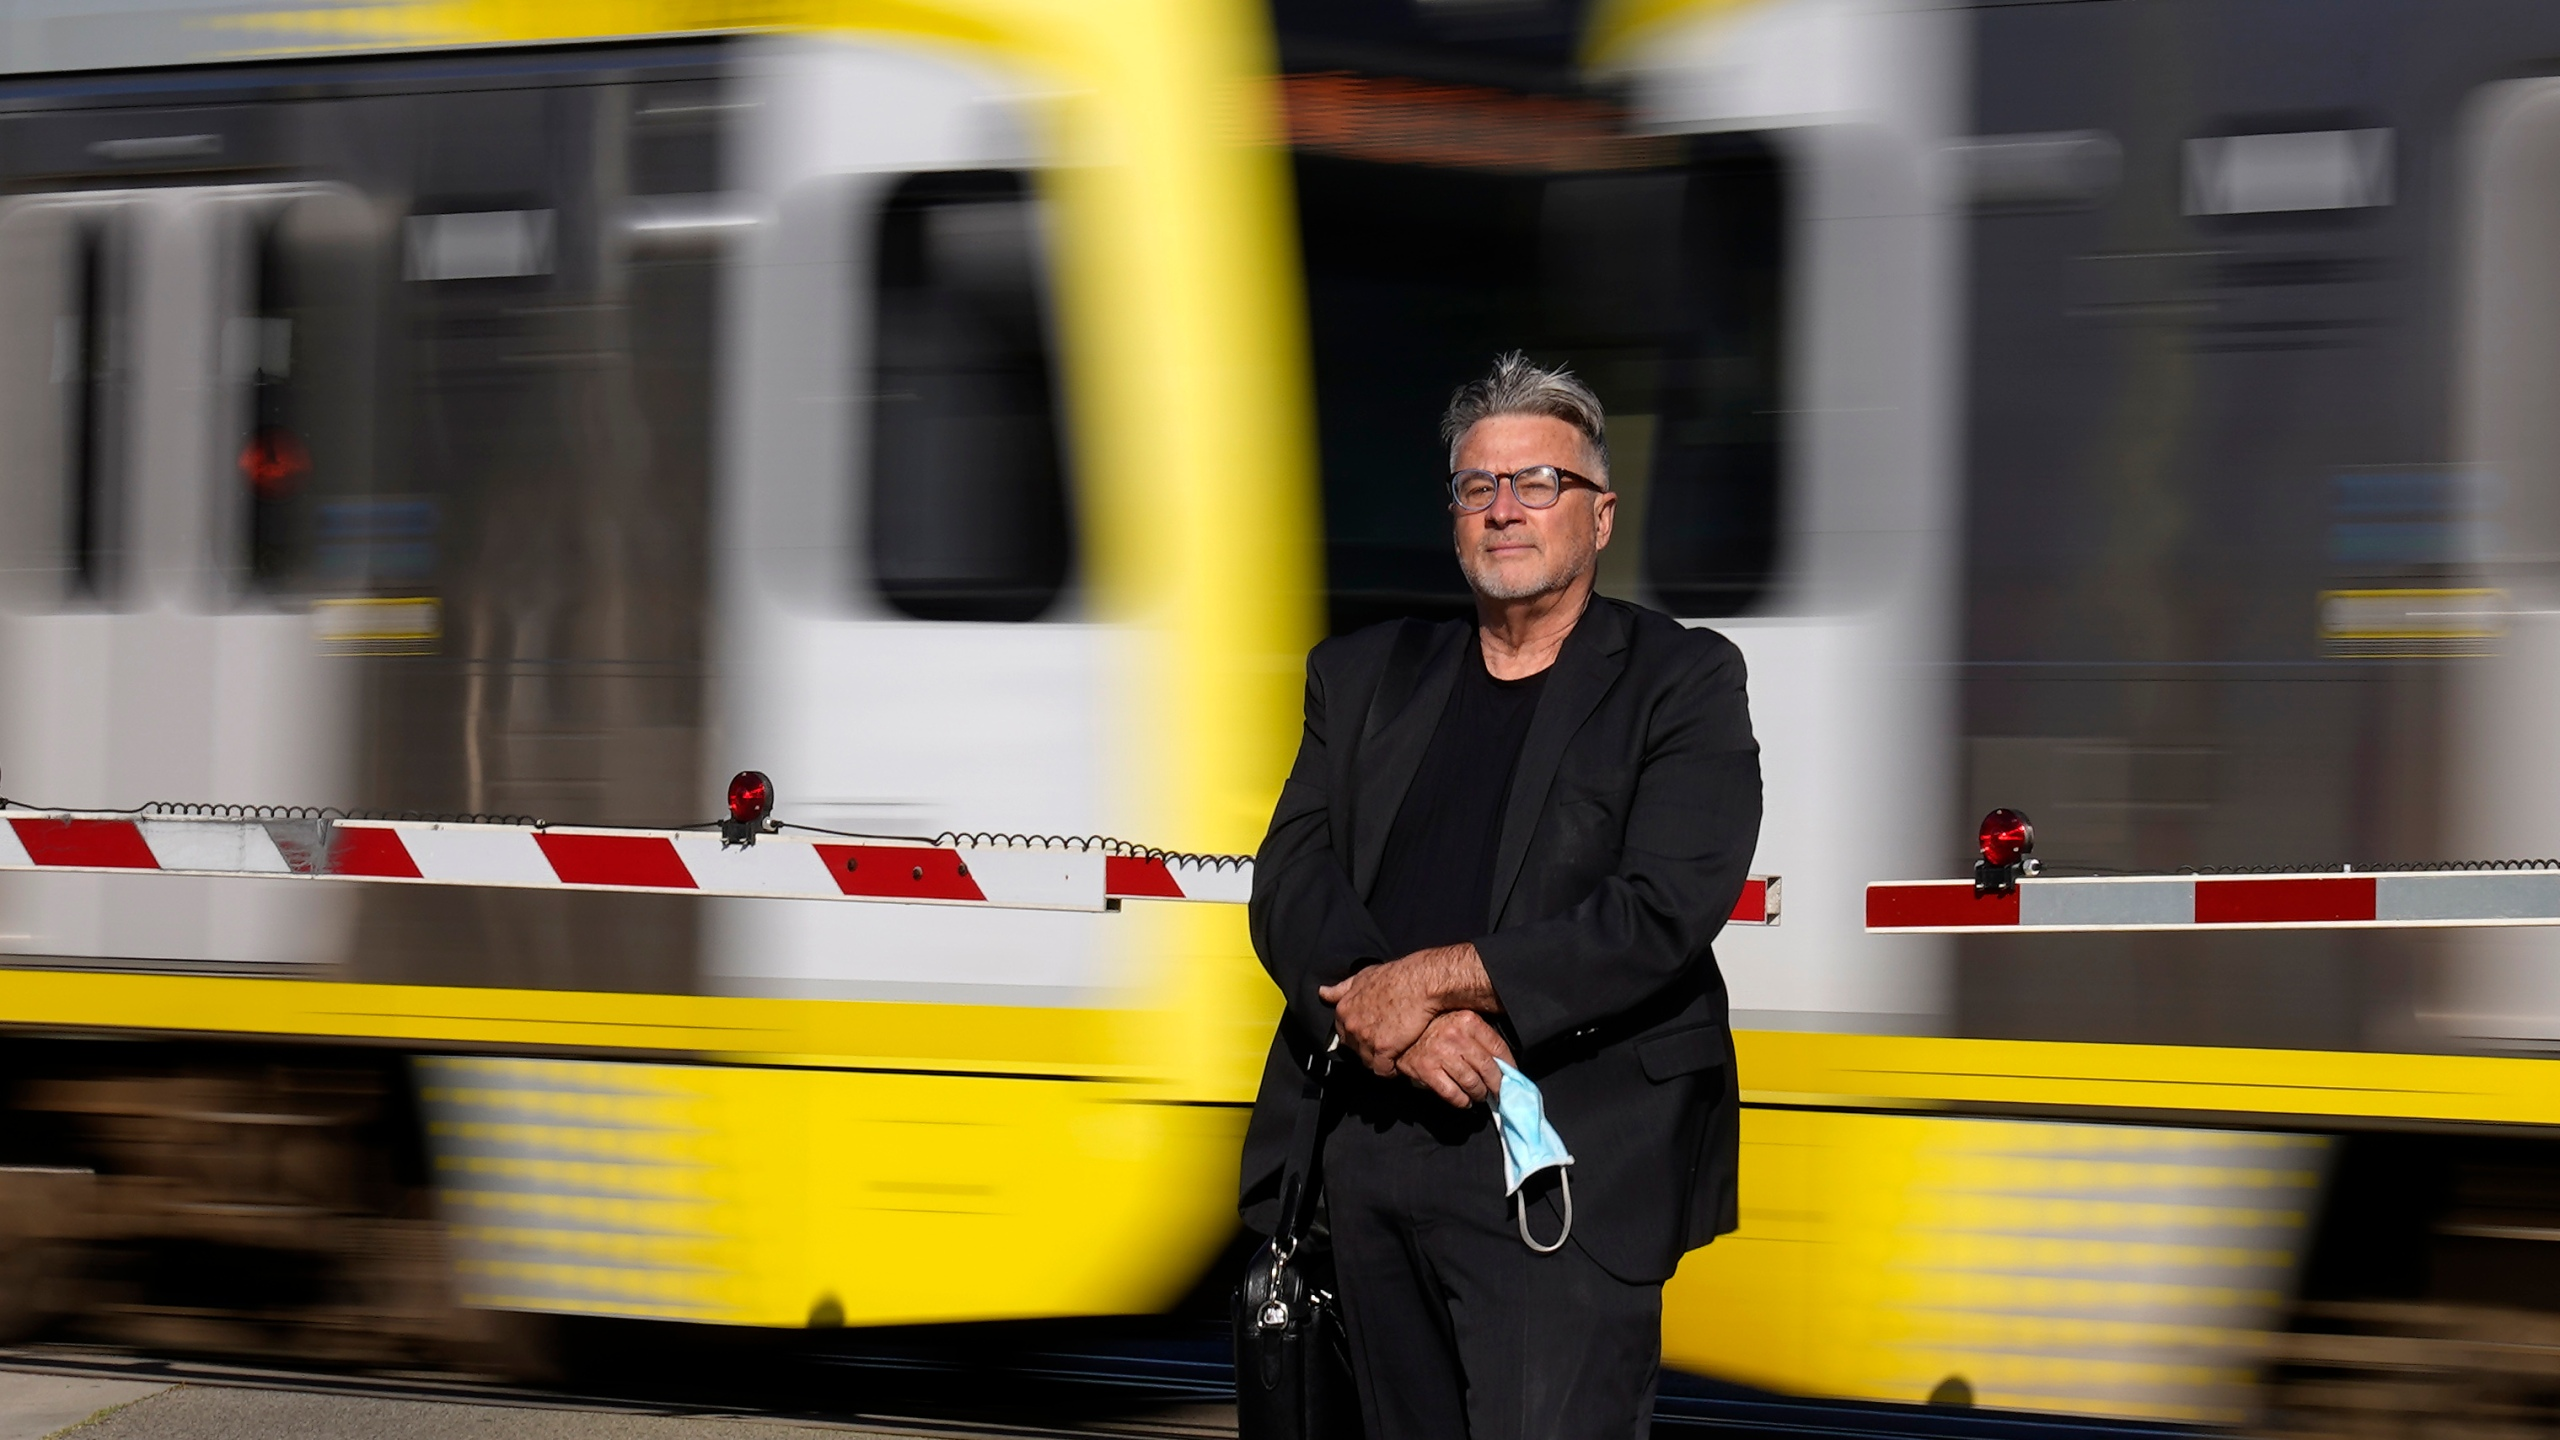 In this April 27, 2021, photo Brad Hudson poses as a Los Angeles Metro train goes by in South Pasadena, Calif. (AP Photo/Mark J. Terrill)